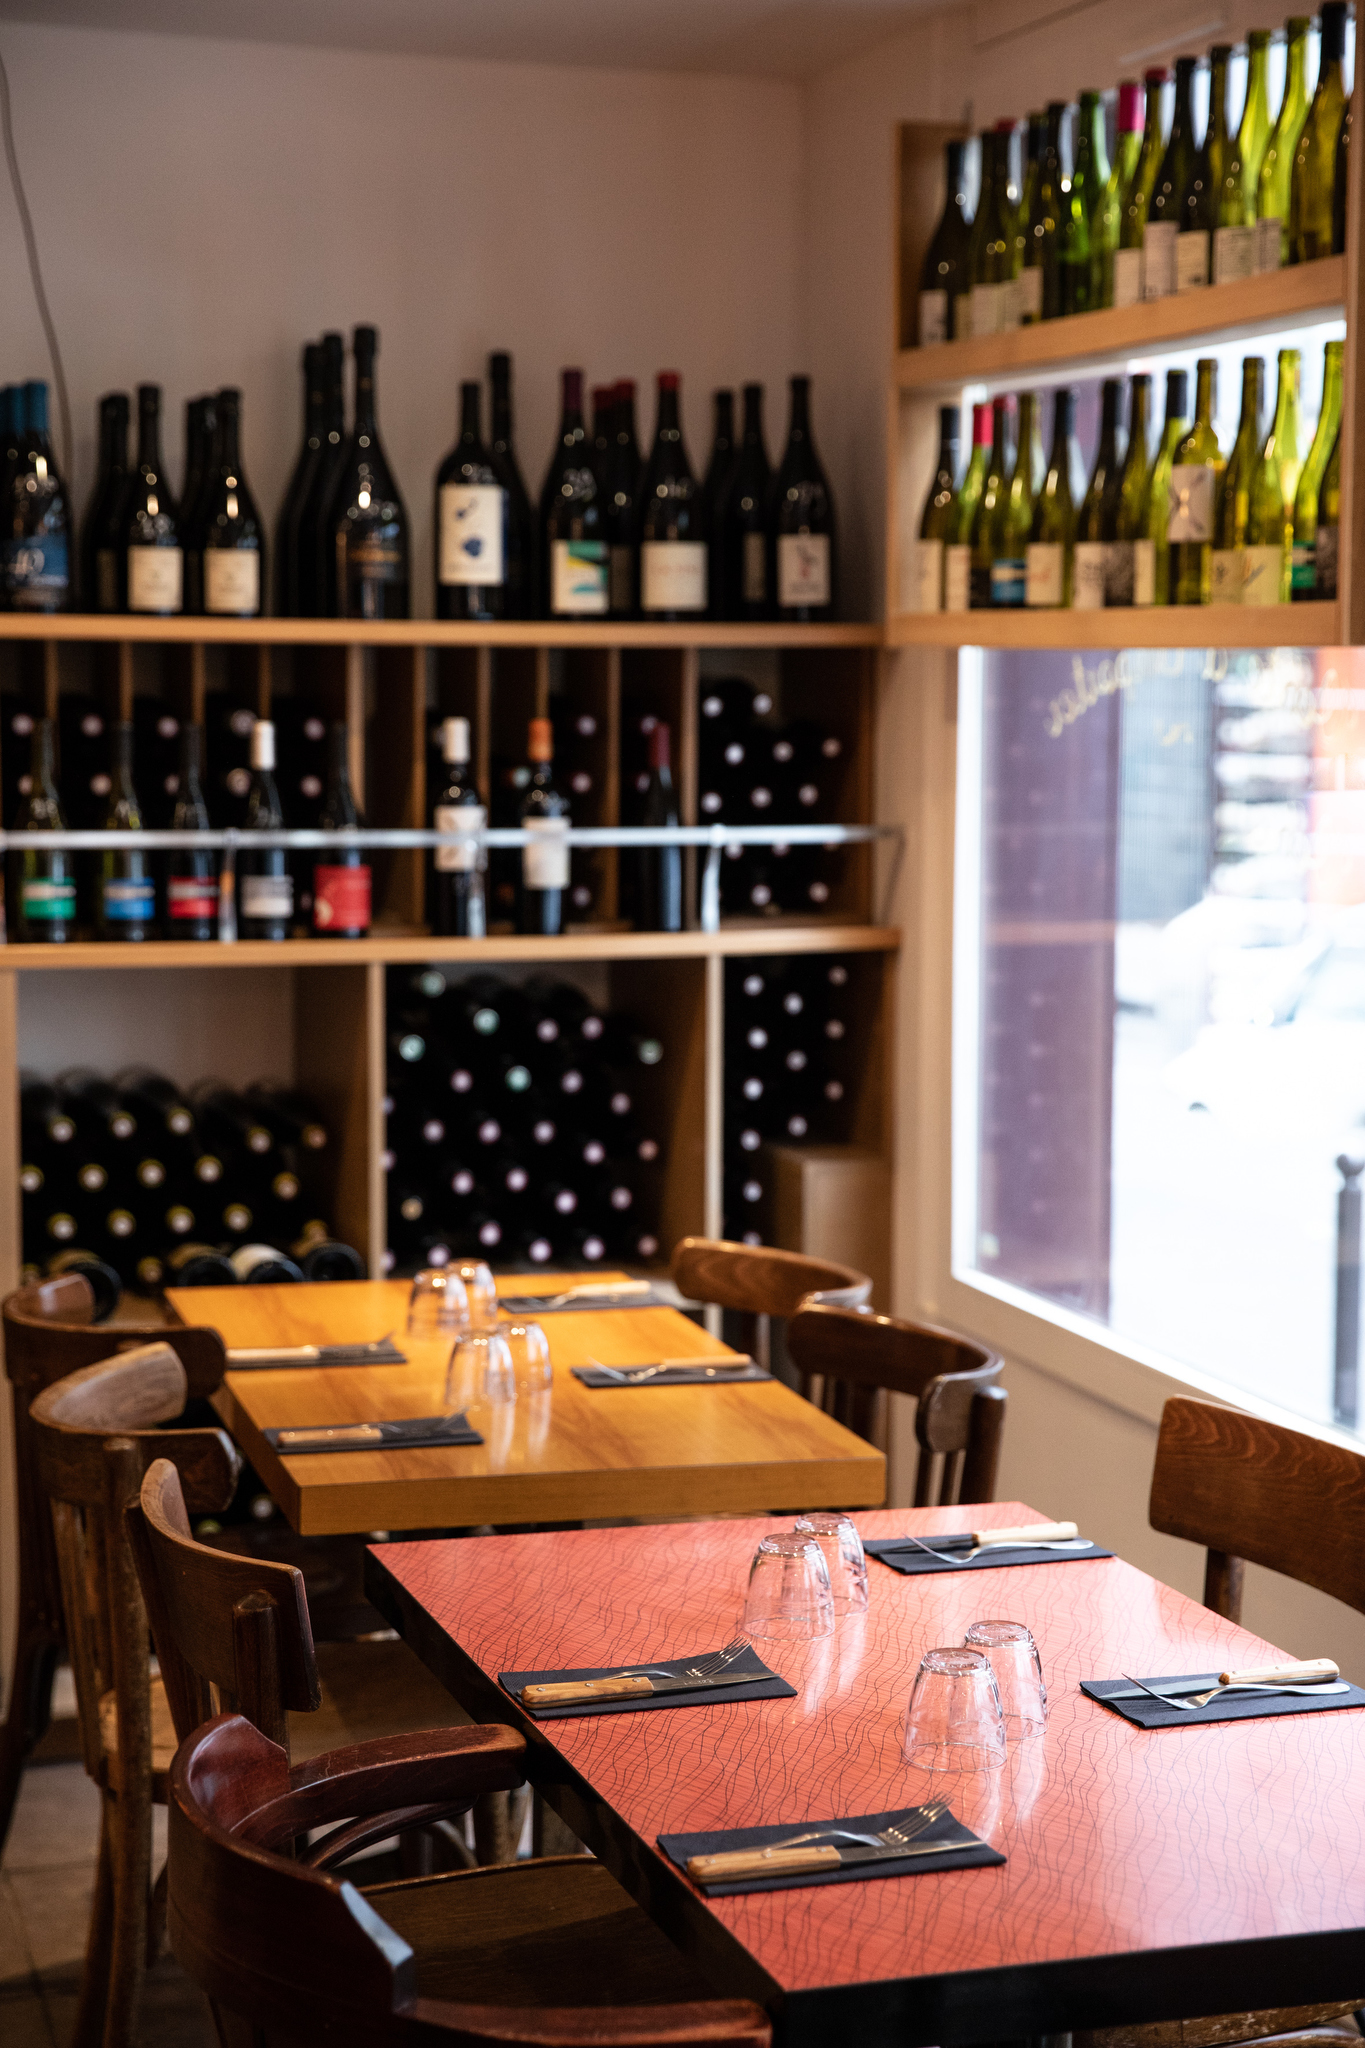 A La Vierge is a new restaurant and wine bar just around the corner form the Père Lachaise cemetery.